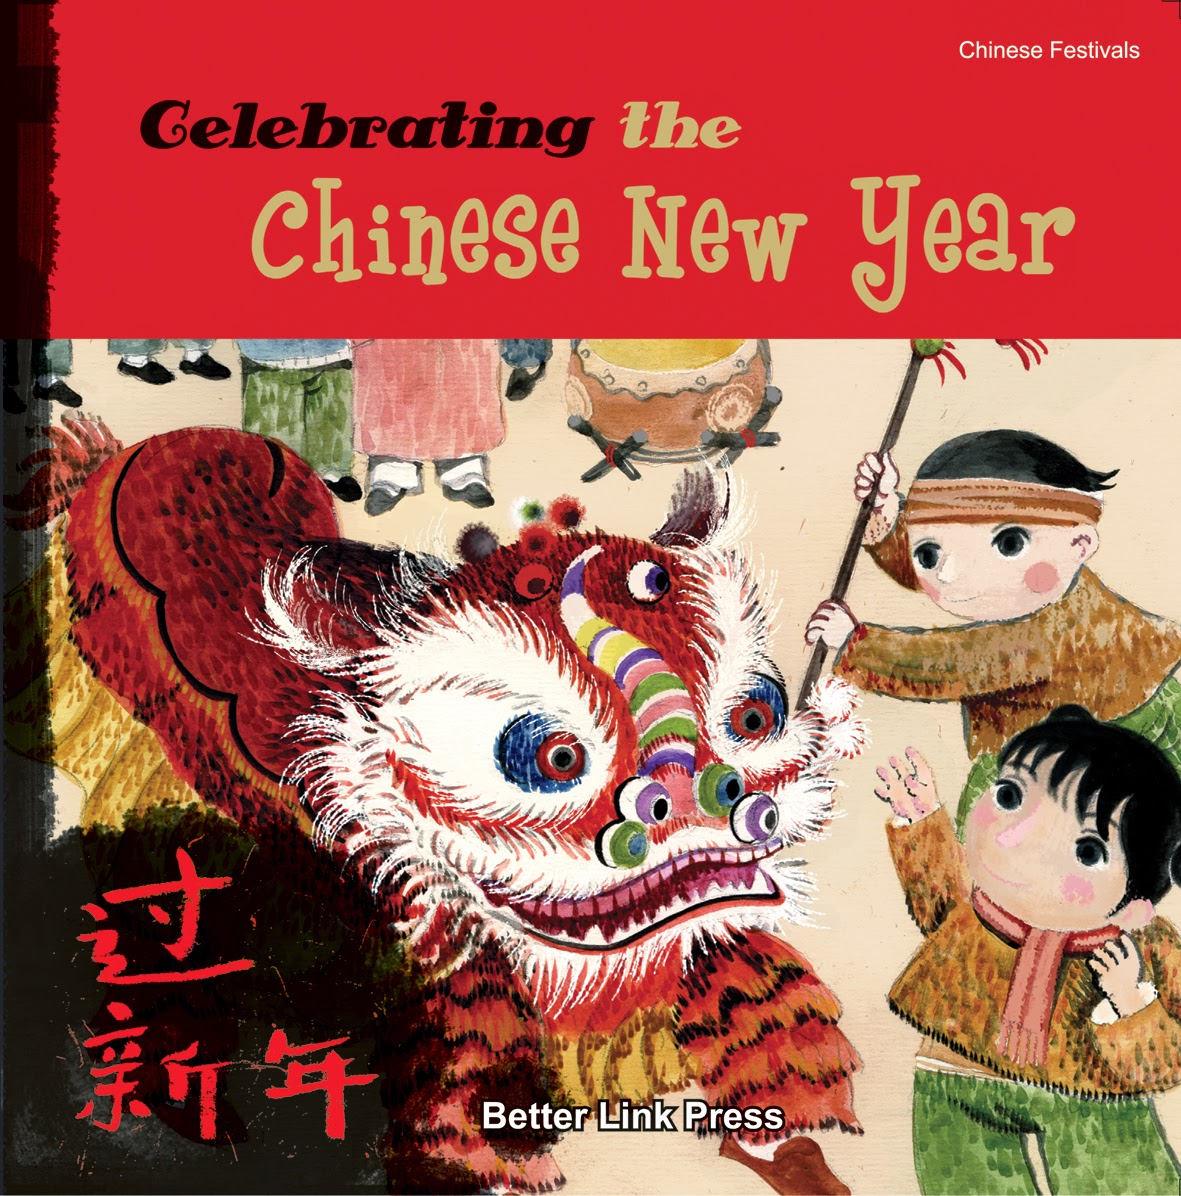 http://www.tuttlepublishing.com/books-by-country/celebrating-the-chinese-new-year